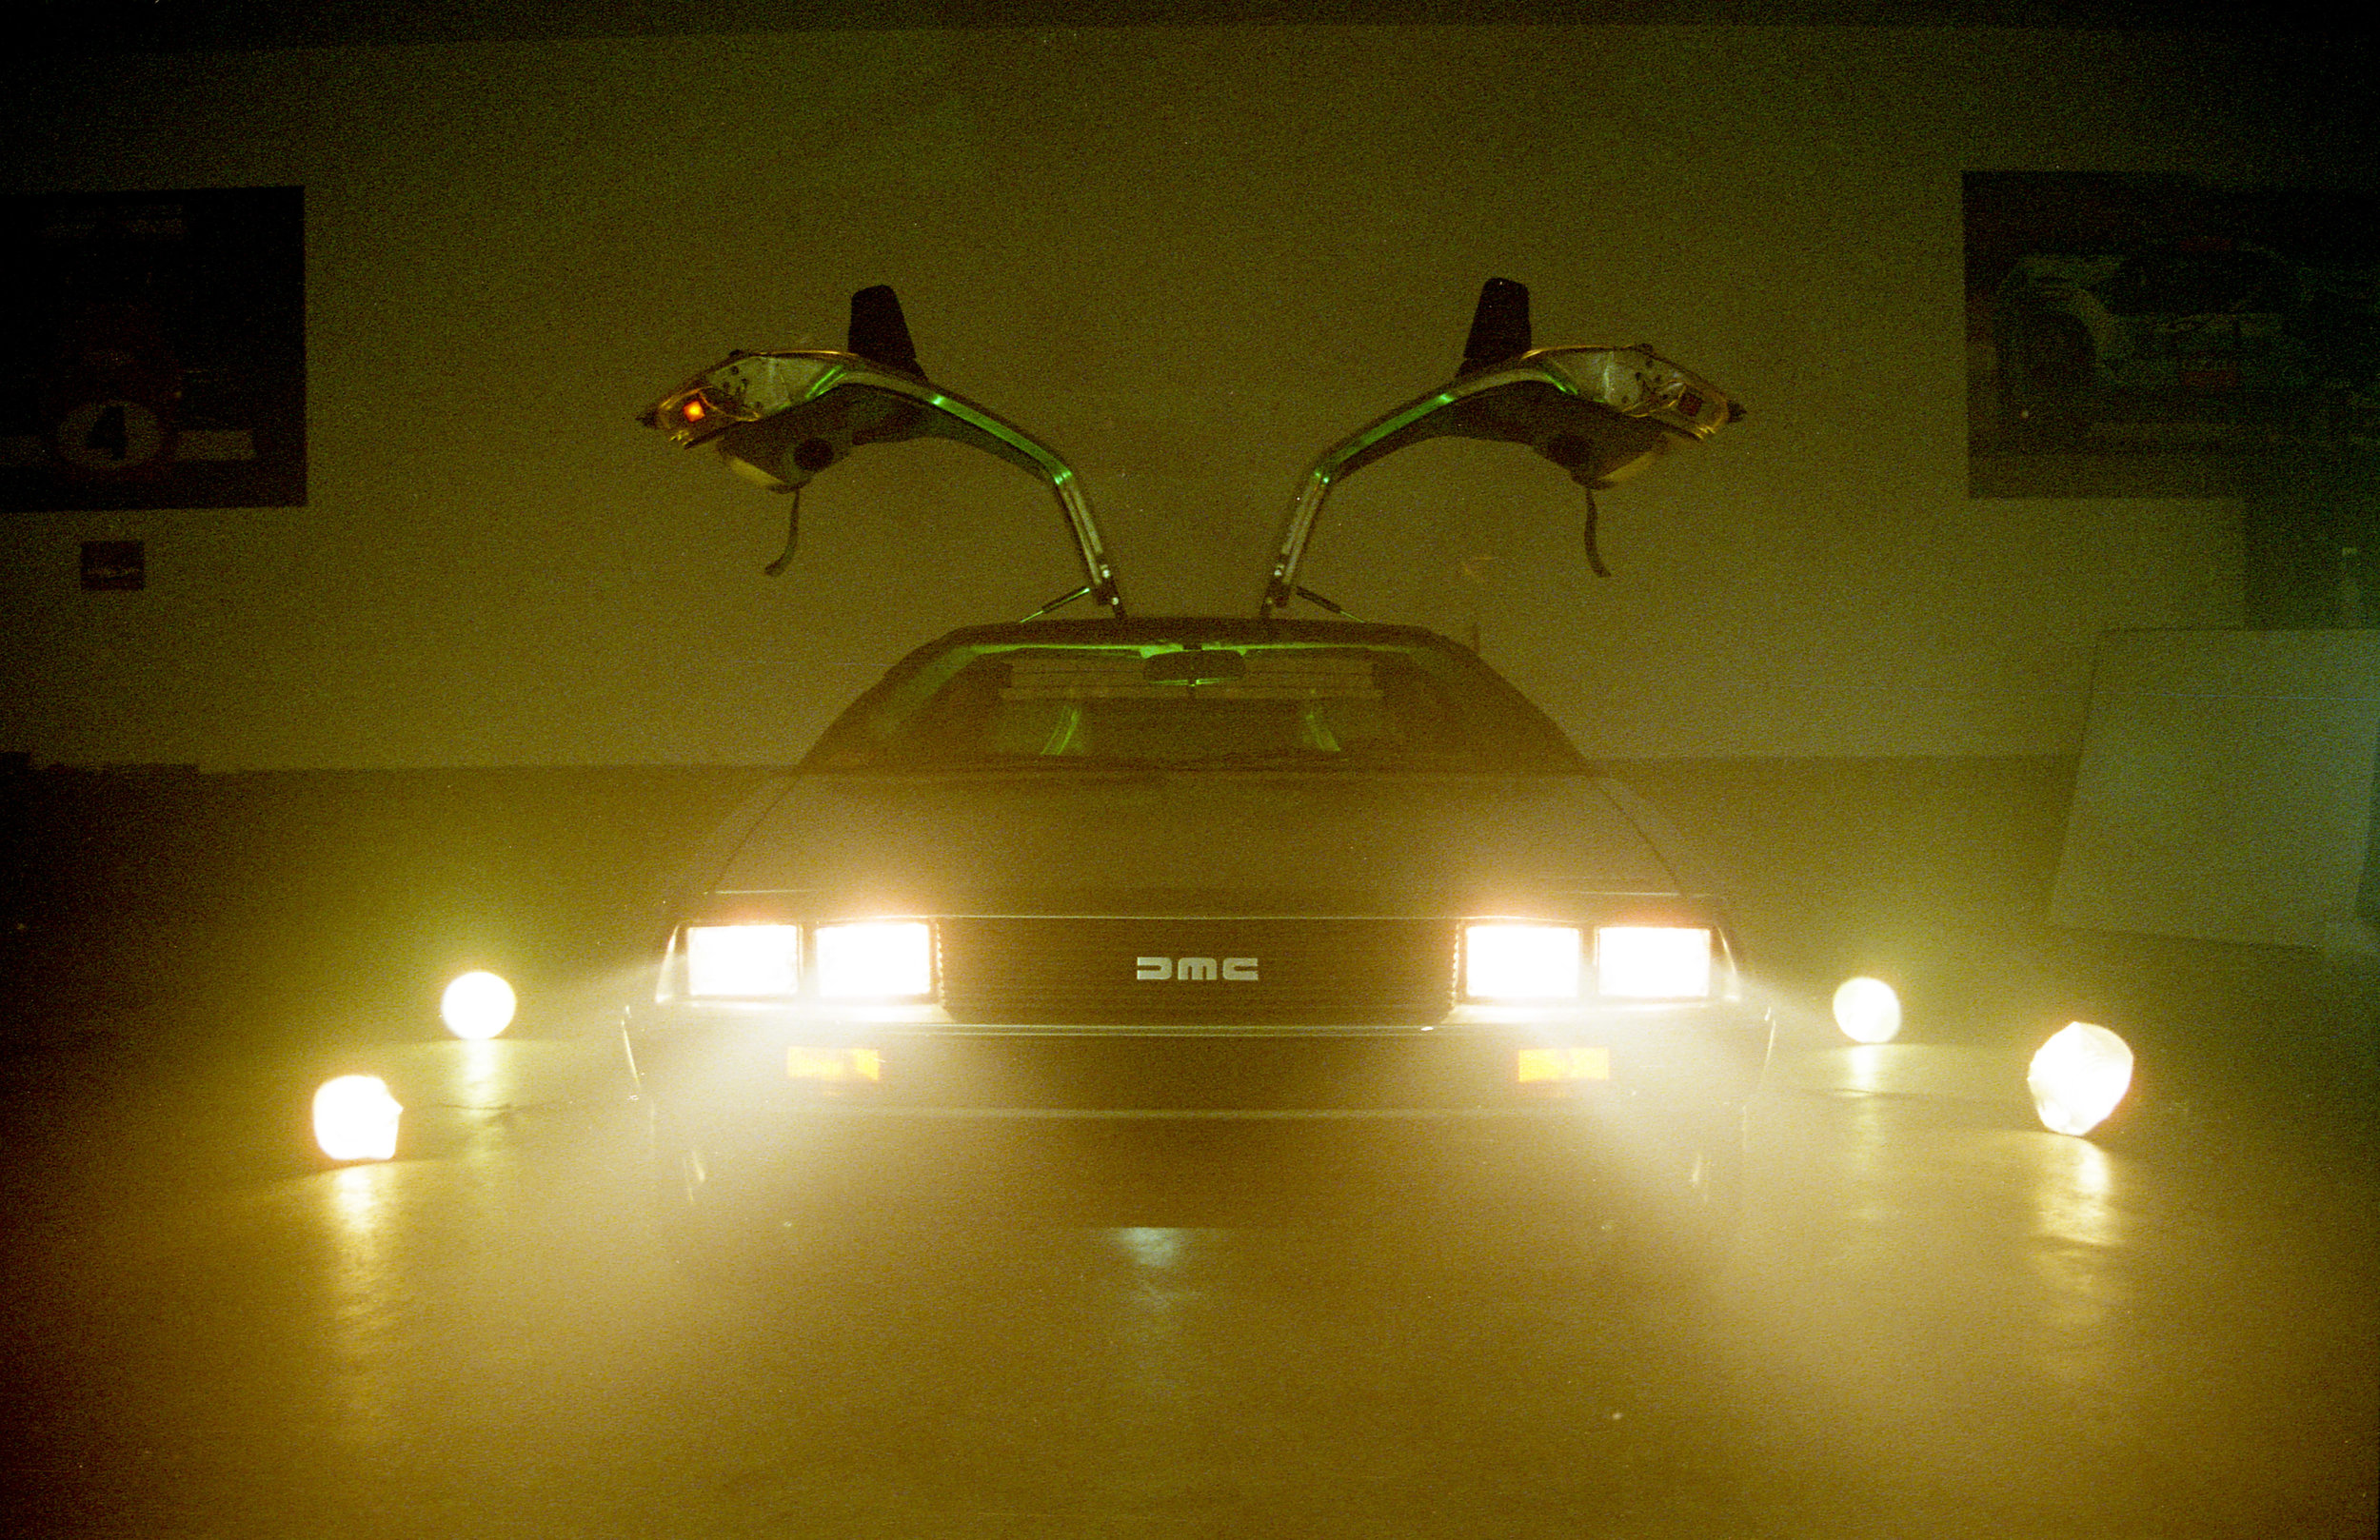 delorean-fog-film-3.jpg